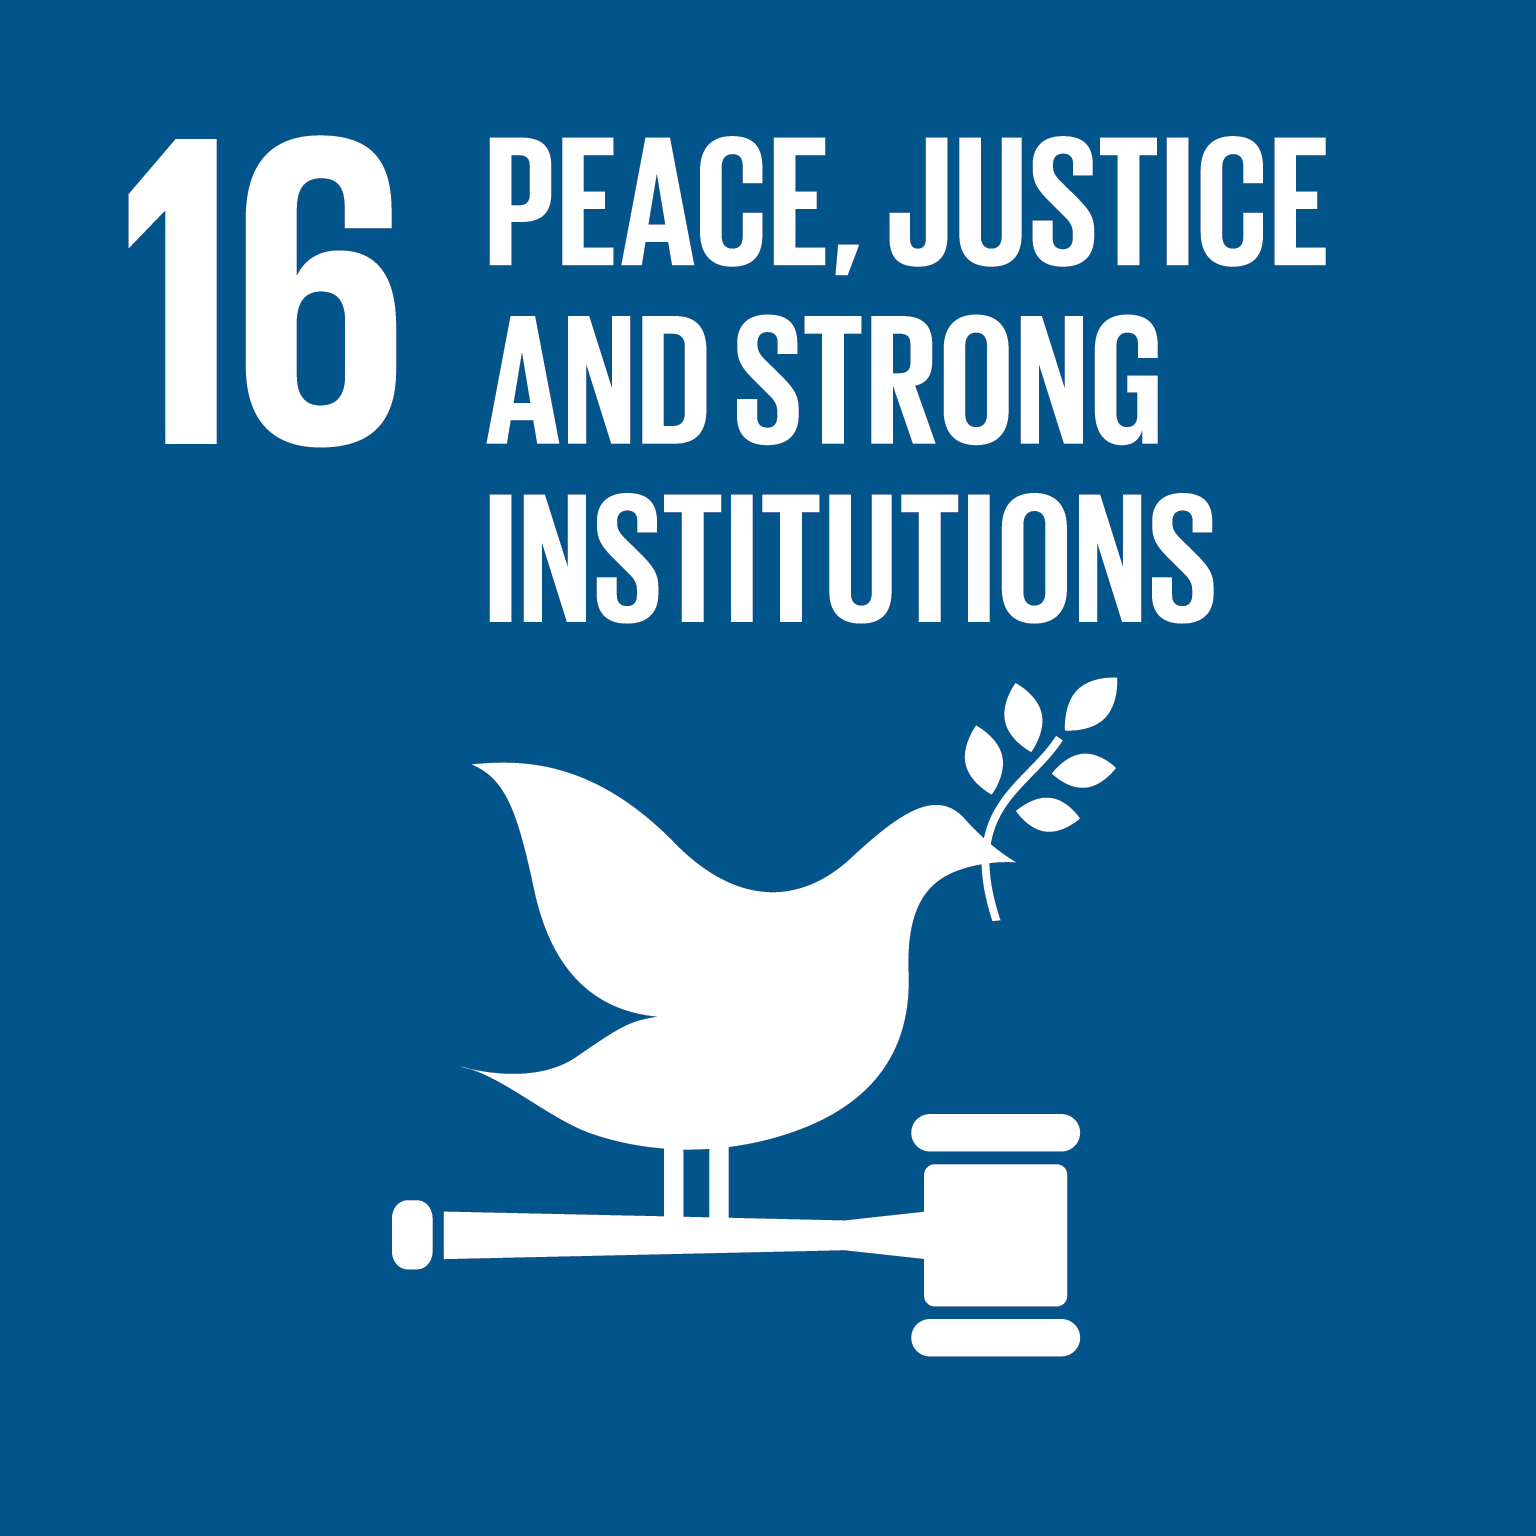 16th goal is Peace, justice and strong institutions